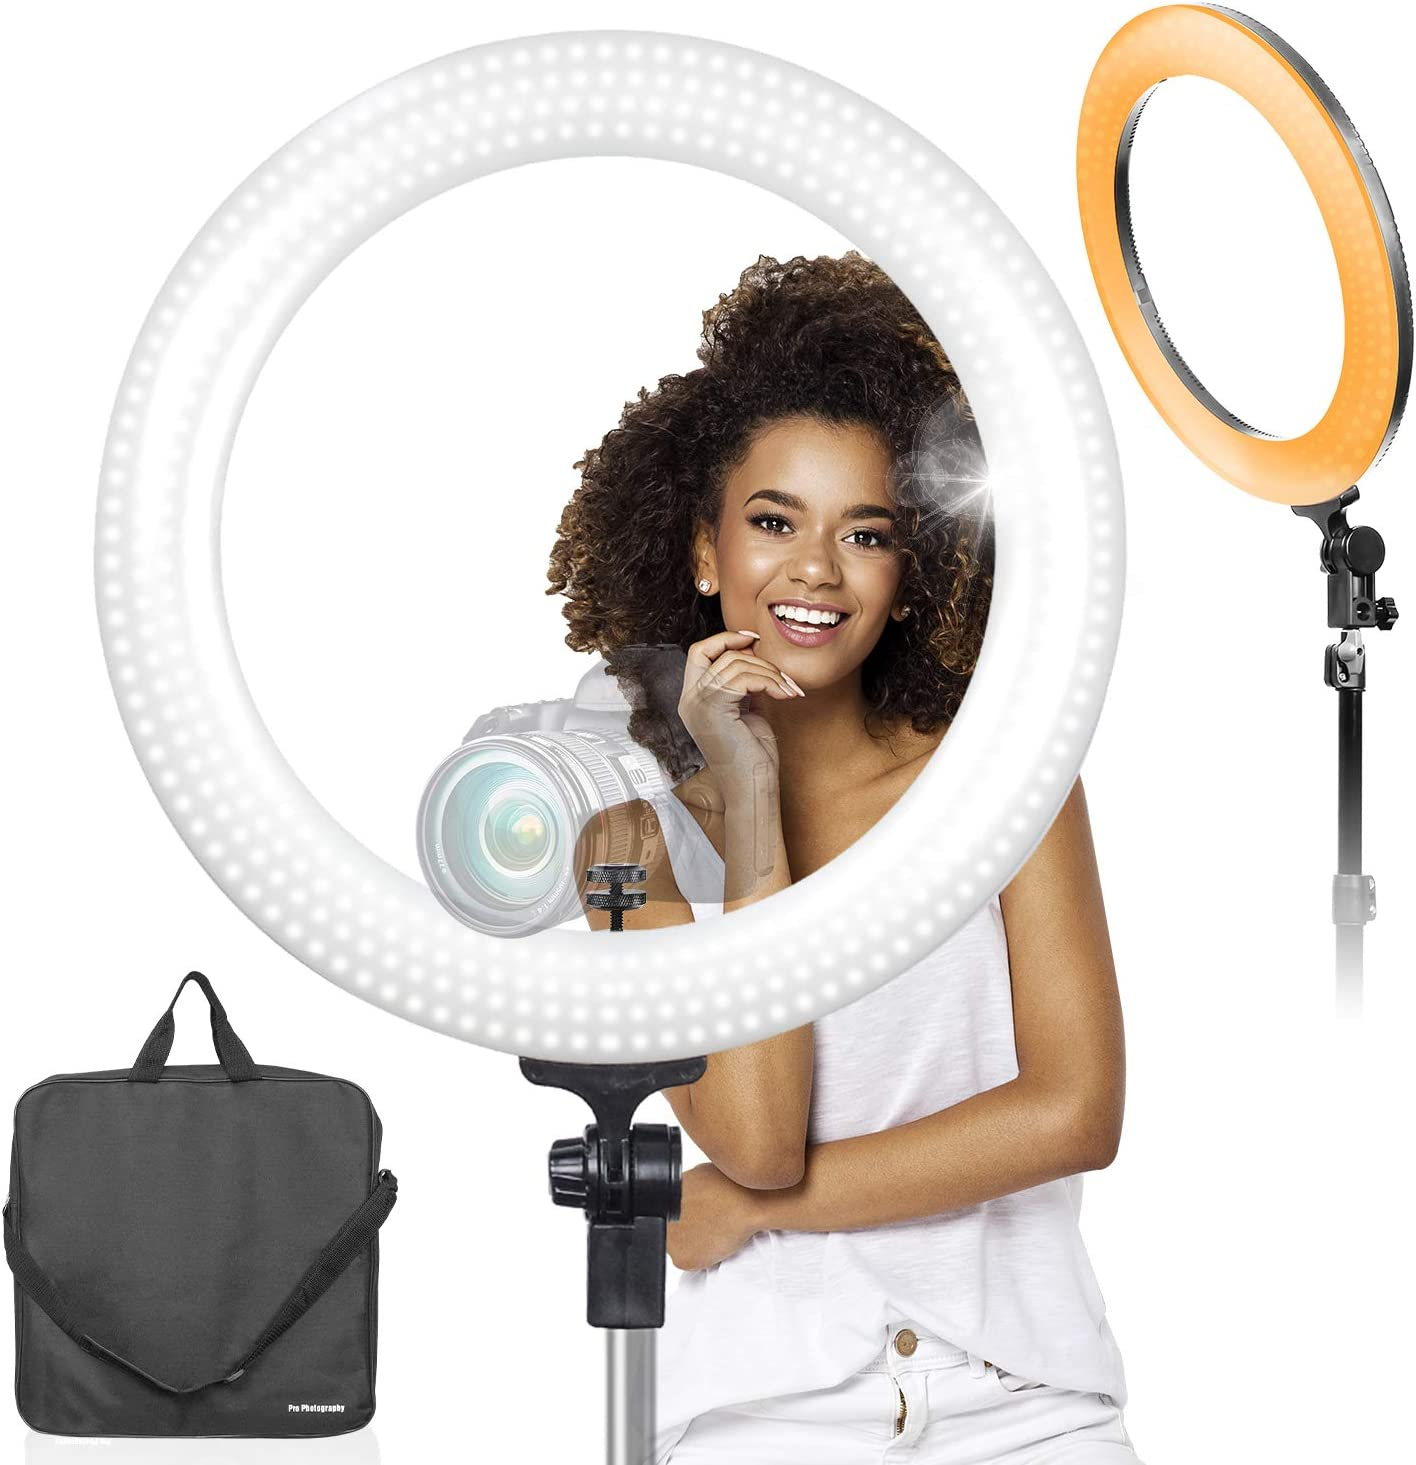 LimoStudio LED 18 inch Ring Light 3200K–5600K and Dimmable with Camera Adapter & Monopod Tripod Mount Clip Cellphone Holder, AGG2396V2 71lWD2BeDOjLSL1500_